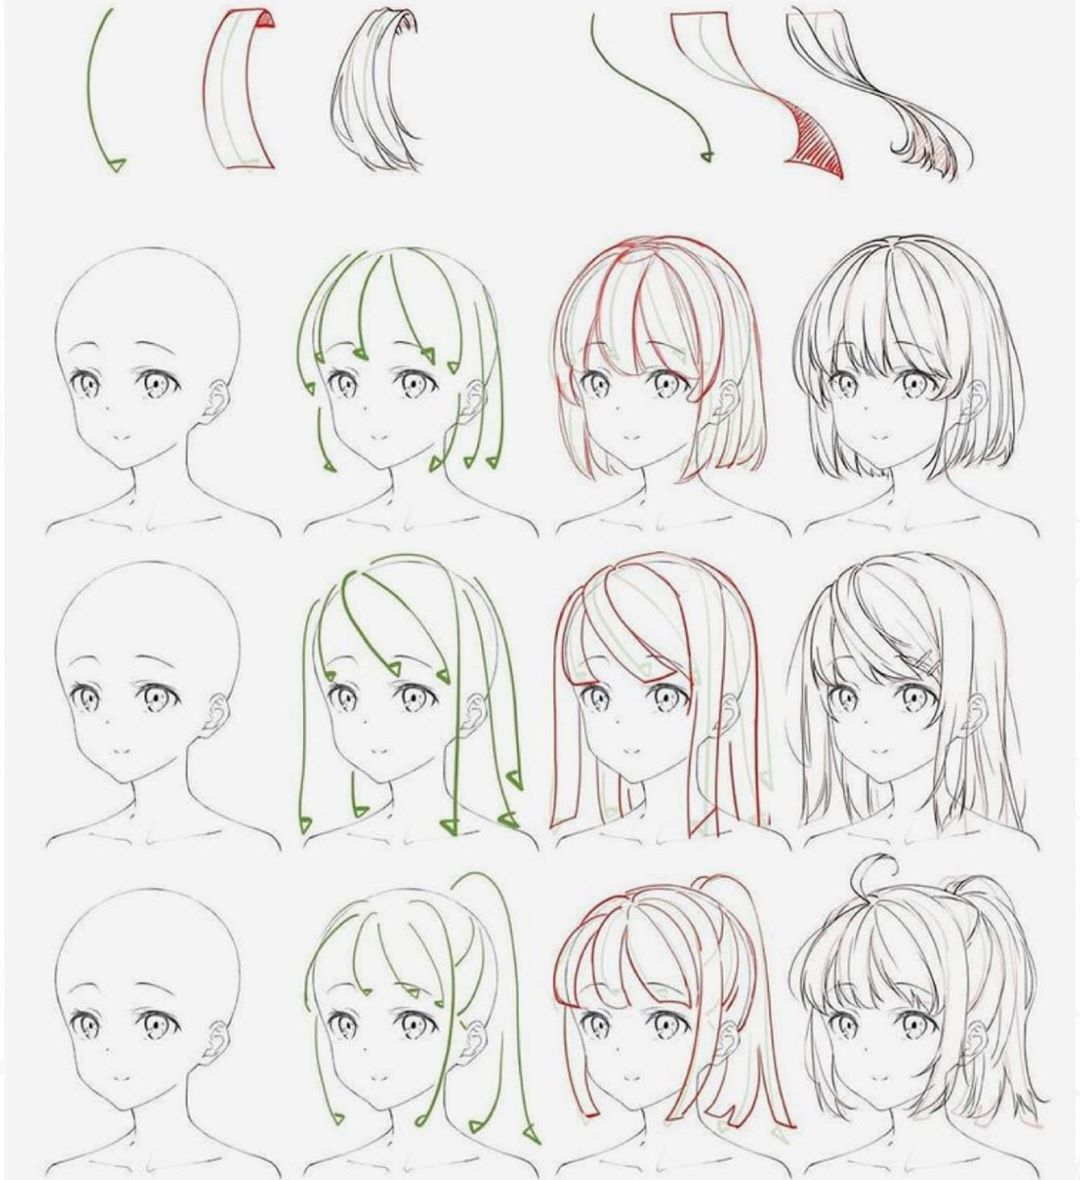 Anime Hair Tutorial Tag Someone Who Needs Help With Hair In 2020 Anime Drawings Tutorials Manga Drawing Tutorials Anime Drawings Sketches